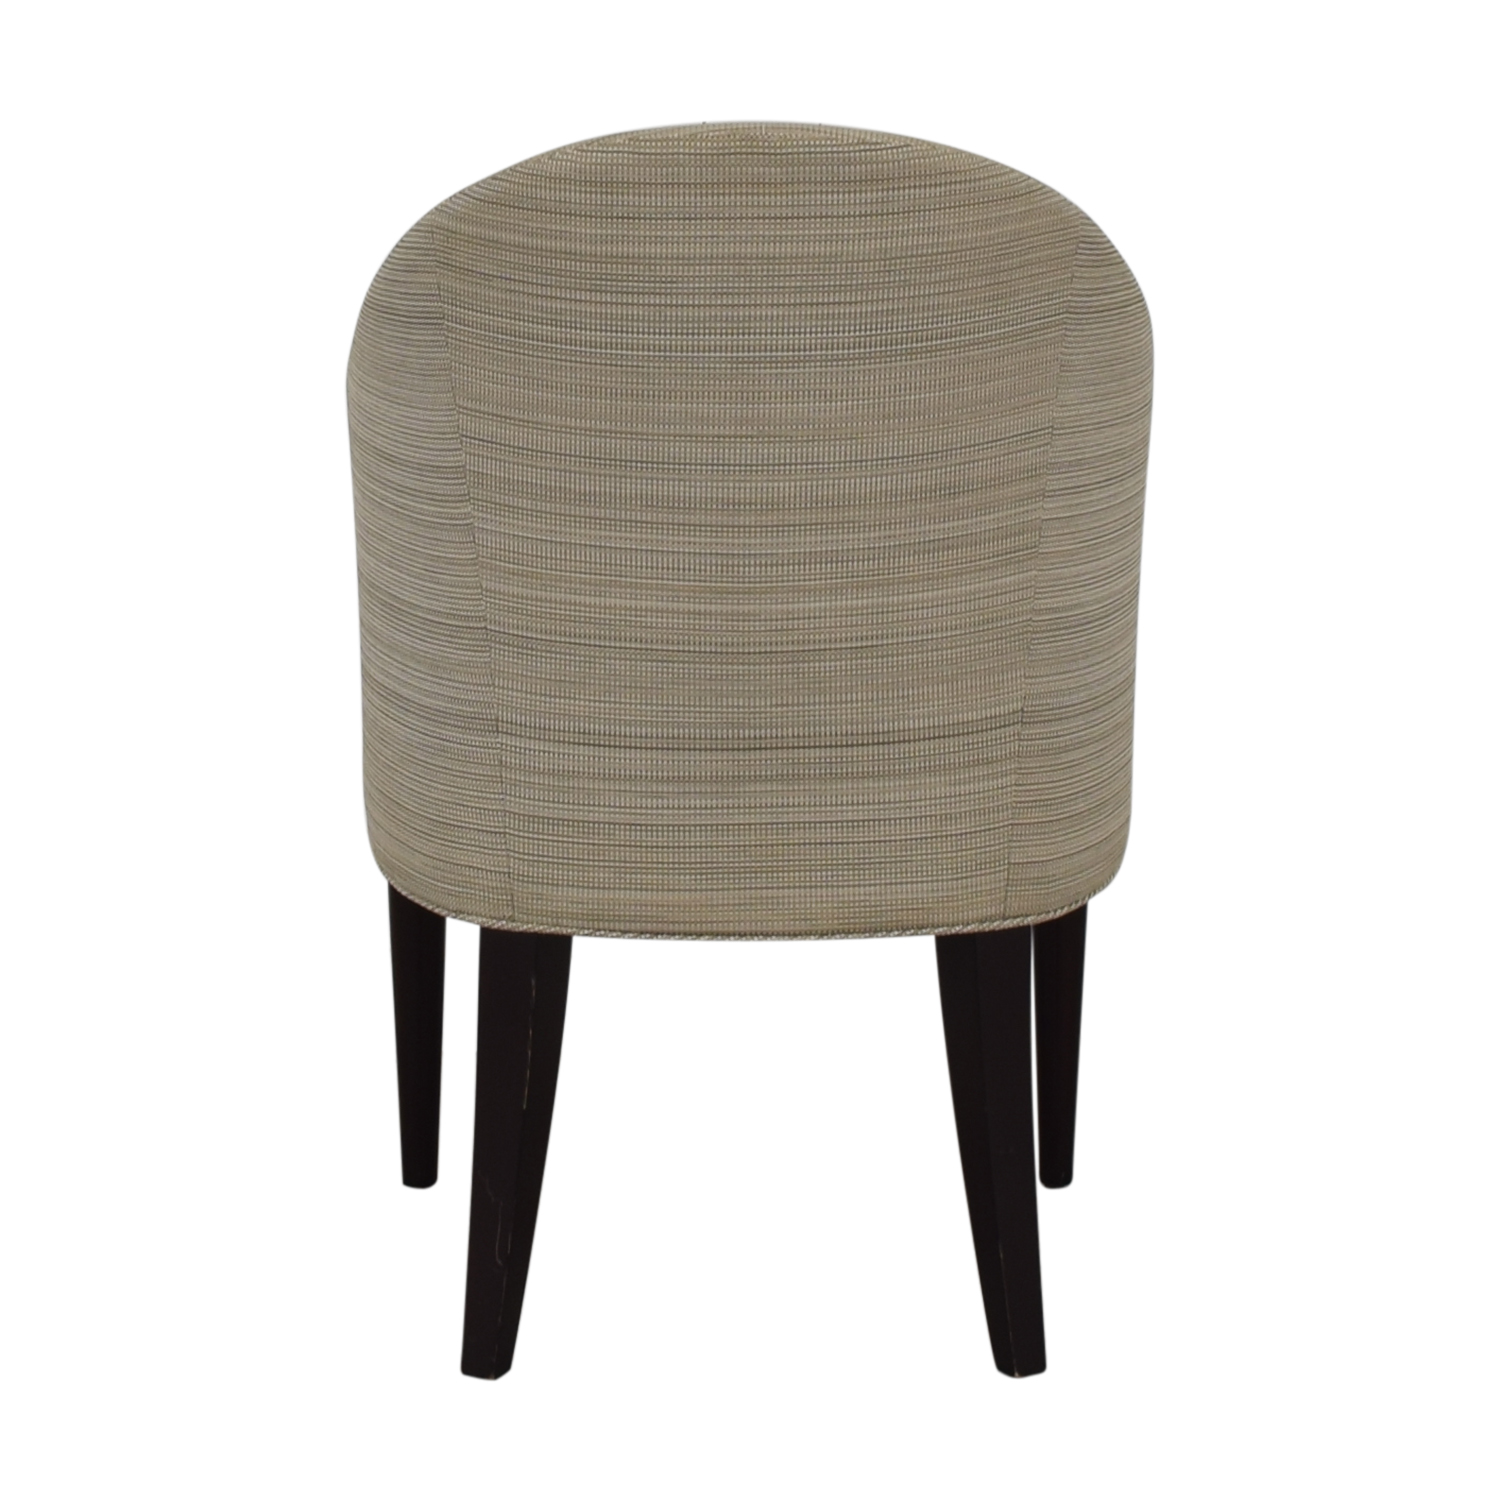 Furniture Masters Furniture Masters Multi-Colored Accent Chair for sale